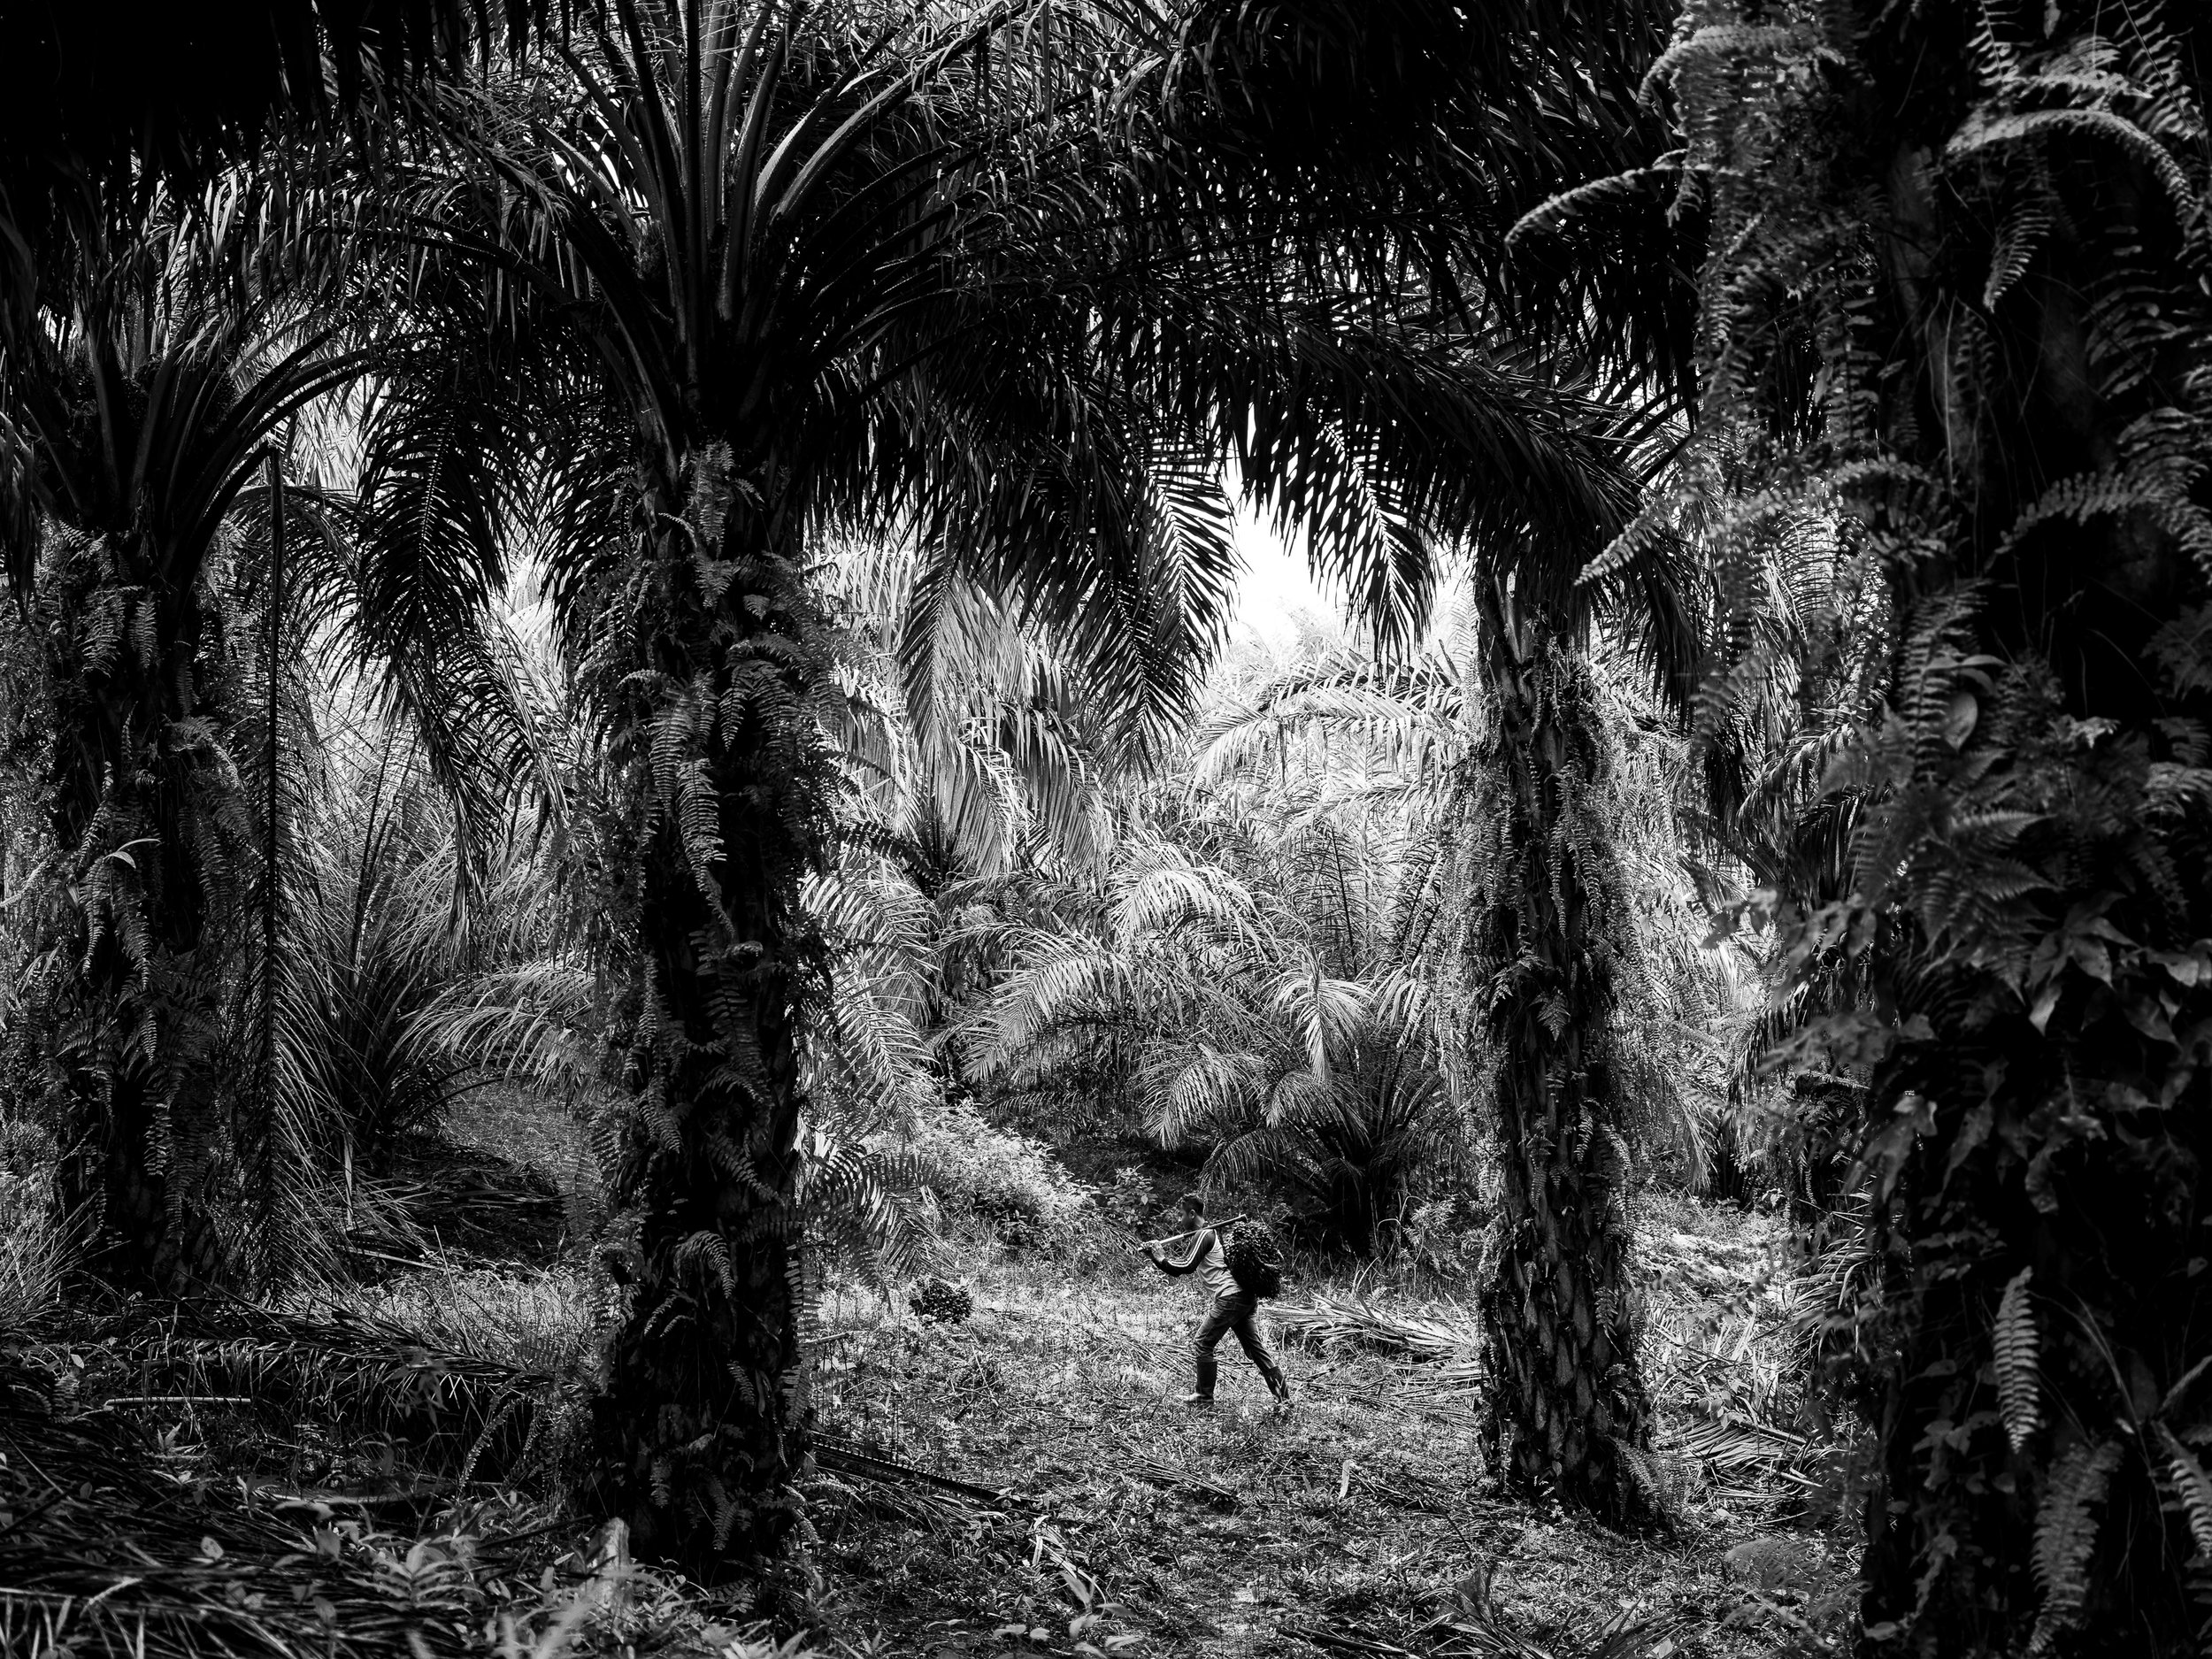 XYZA CRUZ BACANI  www.xyzacruzbacani.com  |  @xyzacruzbacani   Puryito carries a palm fruit on a plantation in Kandis, Riau, Indonesia. Puryito is the brother of Sunil and their whole family works in plantations.